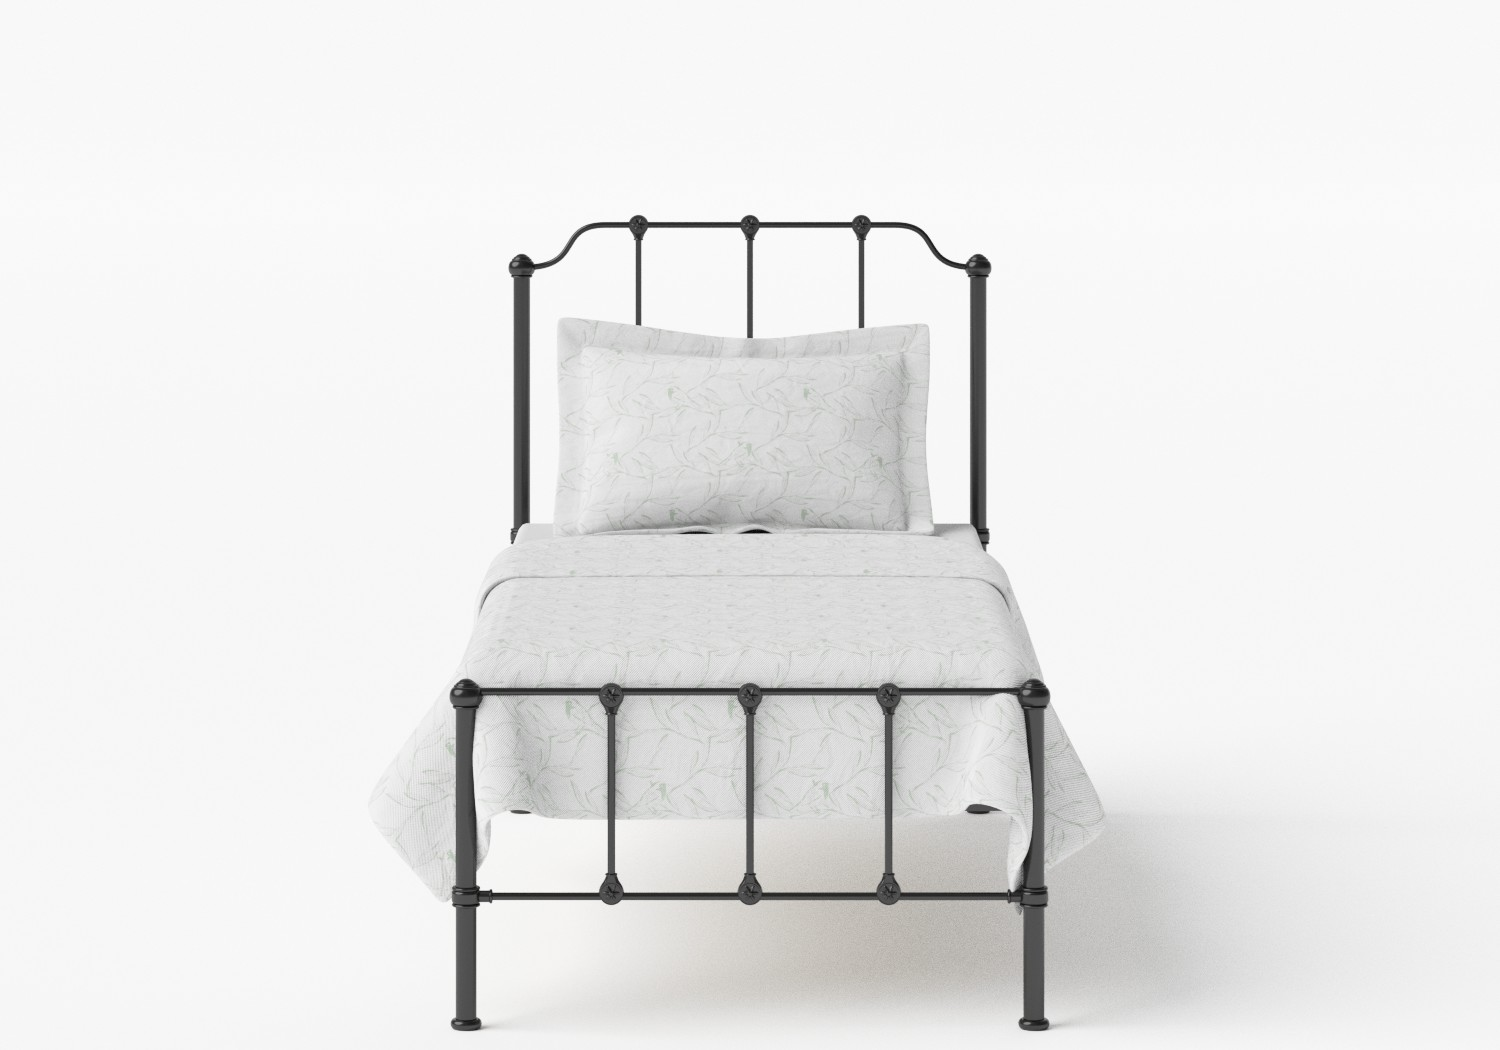 Julia Single Iron/Metal Bed in Satin Black